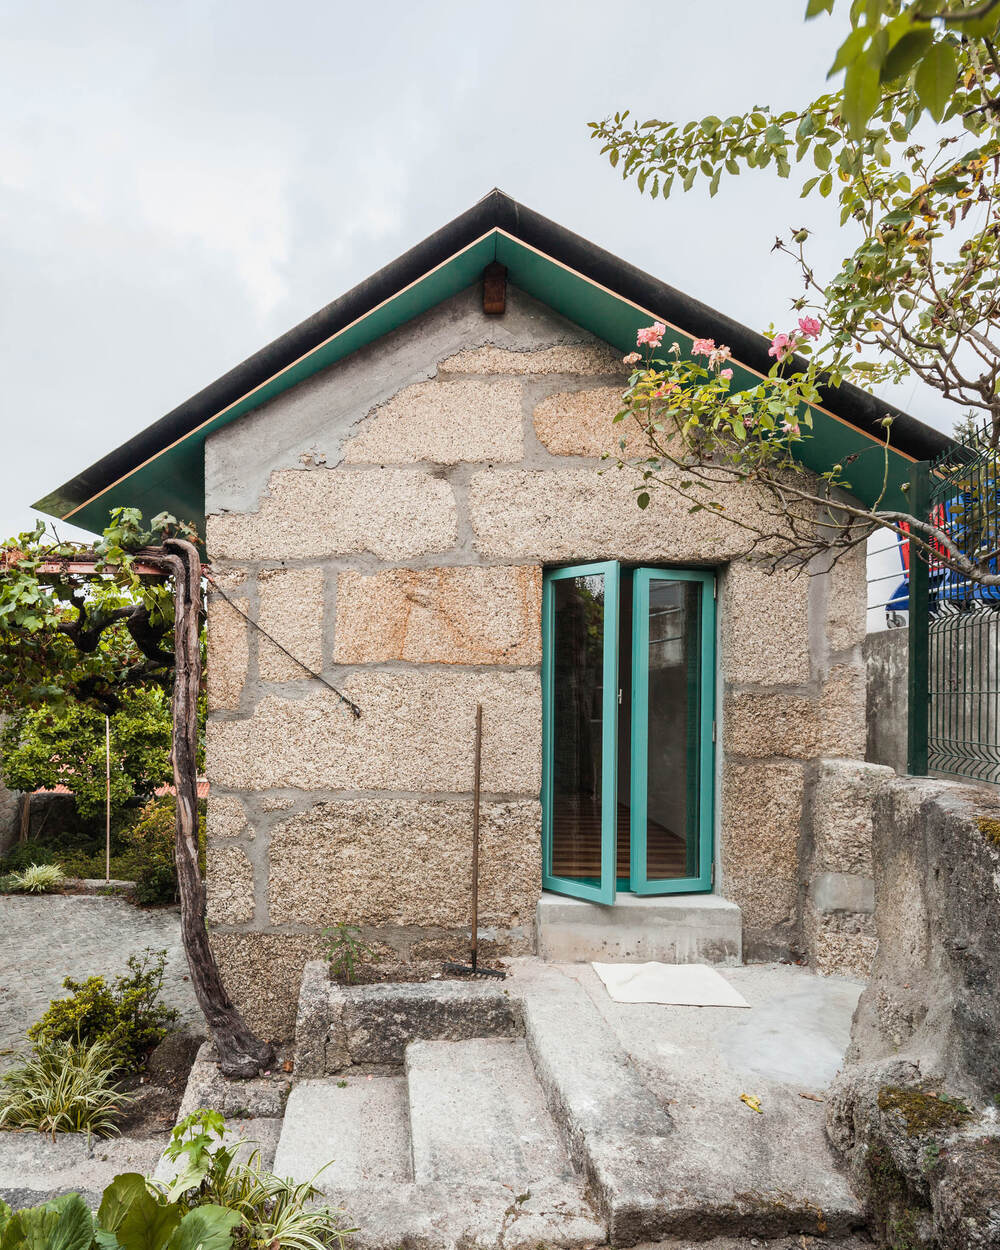 The exterior of the house has large adobe exterior walls adorned with small accents of green on the roof and window.